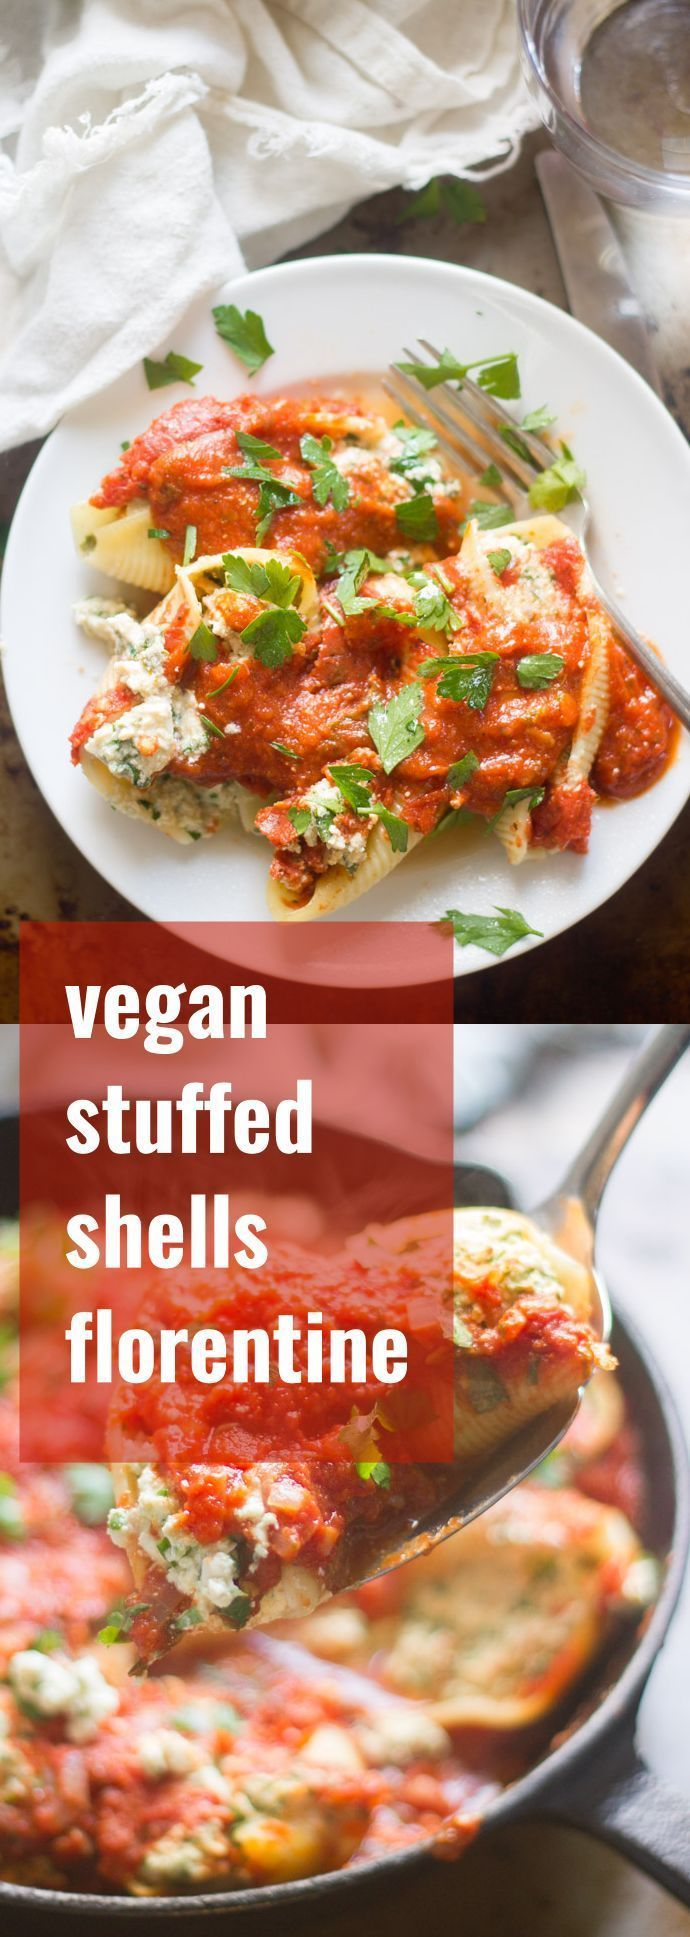 Rich and creamy cashew-tofu ricotta is blended with fresh spinach, stuffed into tender little pasta pockets and smothered in a quick garlicky tomato sauce to make these vegan stuffed shells.